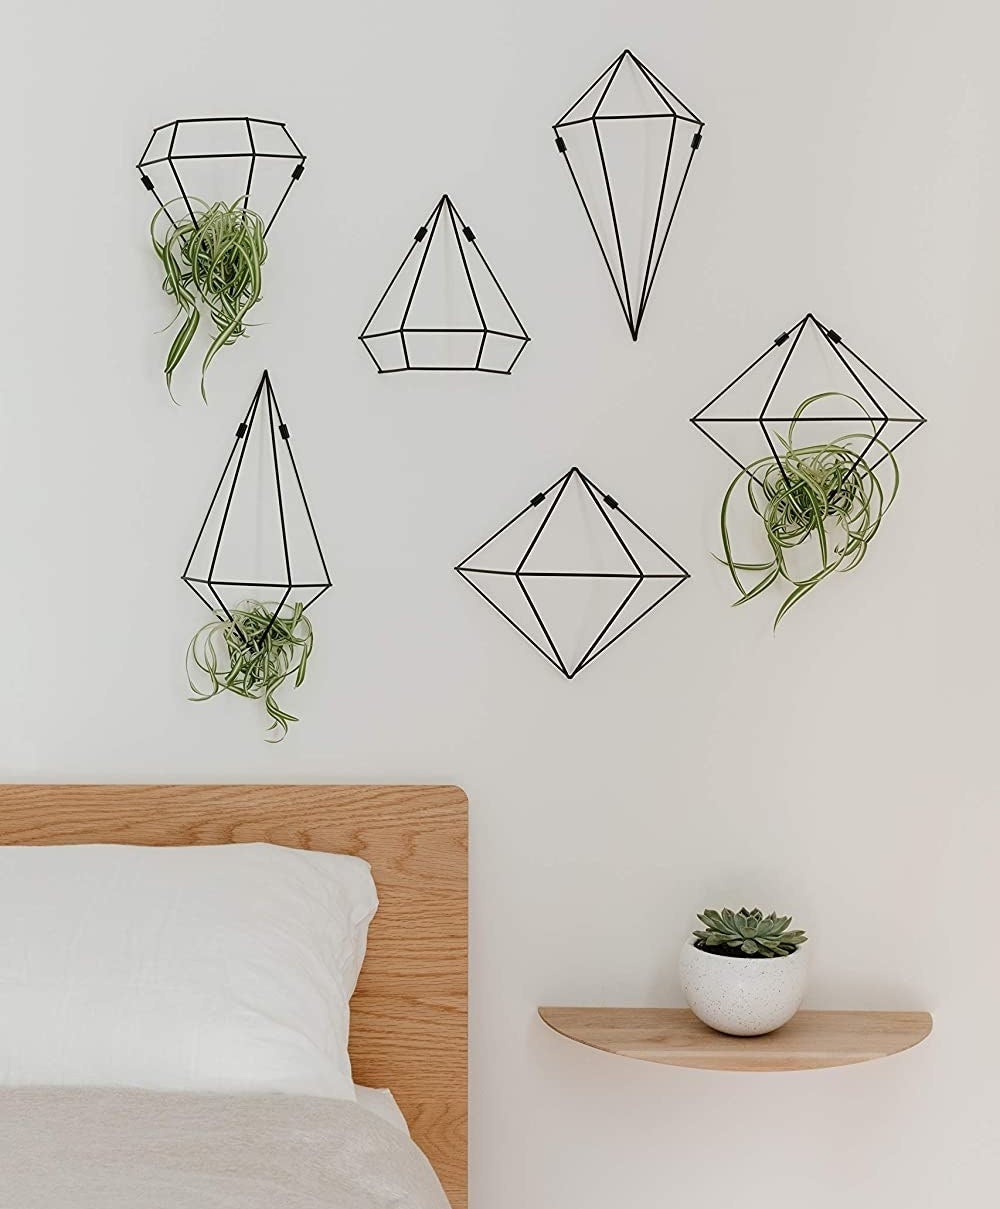 The prisms on a wall above a bed